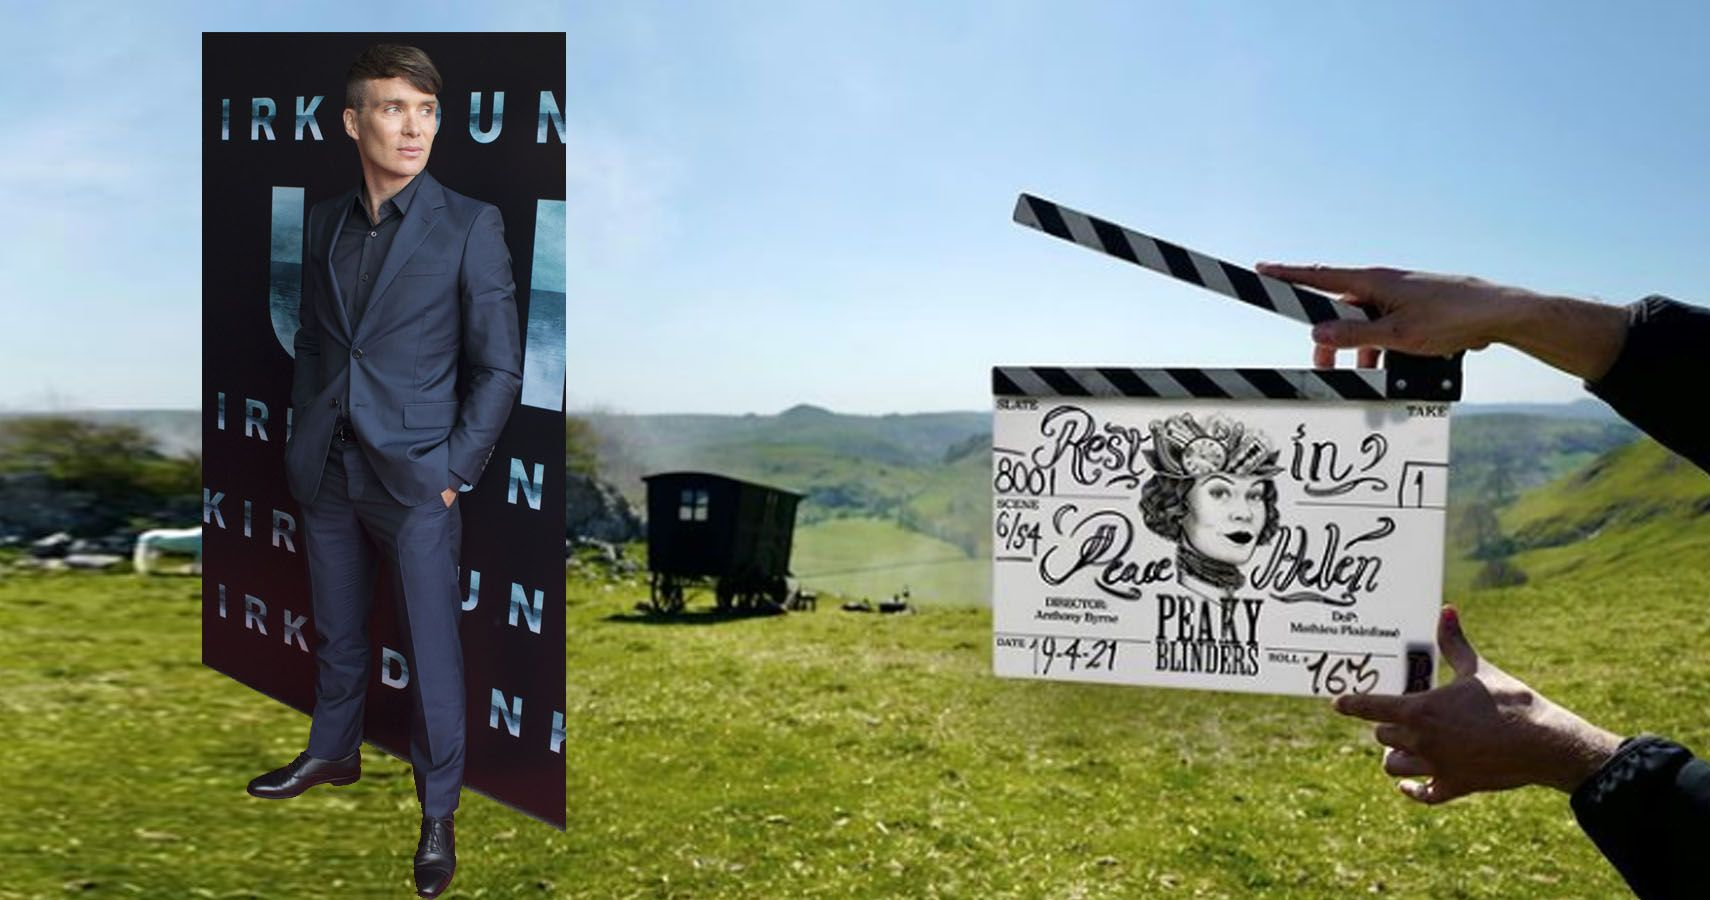 Peaky Blinders: The Way Cillian Murphy Quietly Earned His First $20 Million